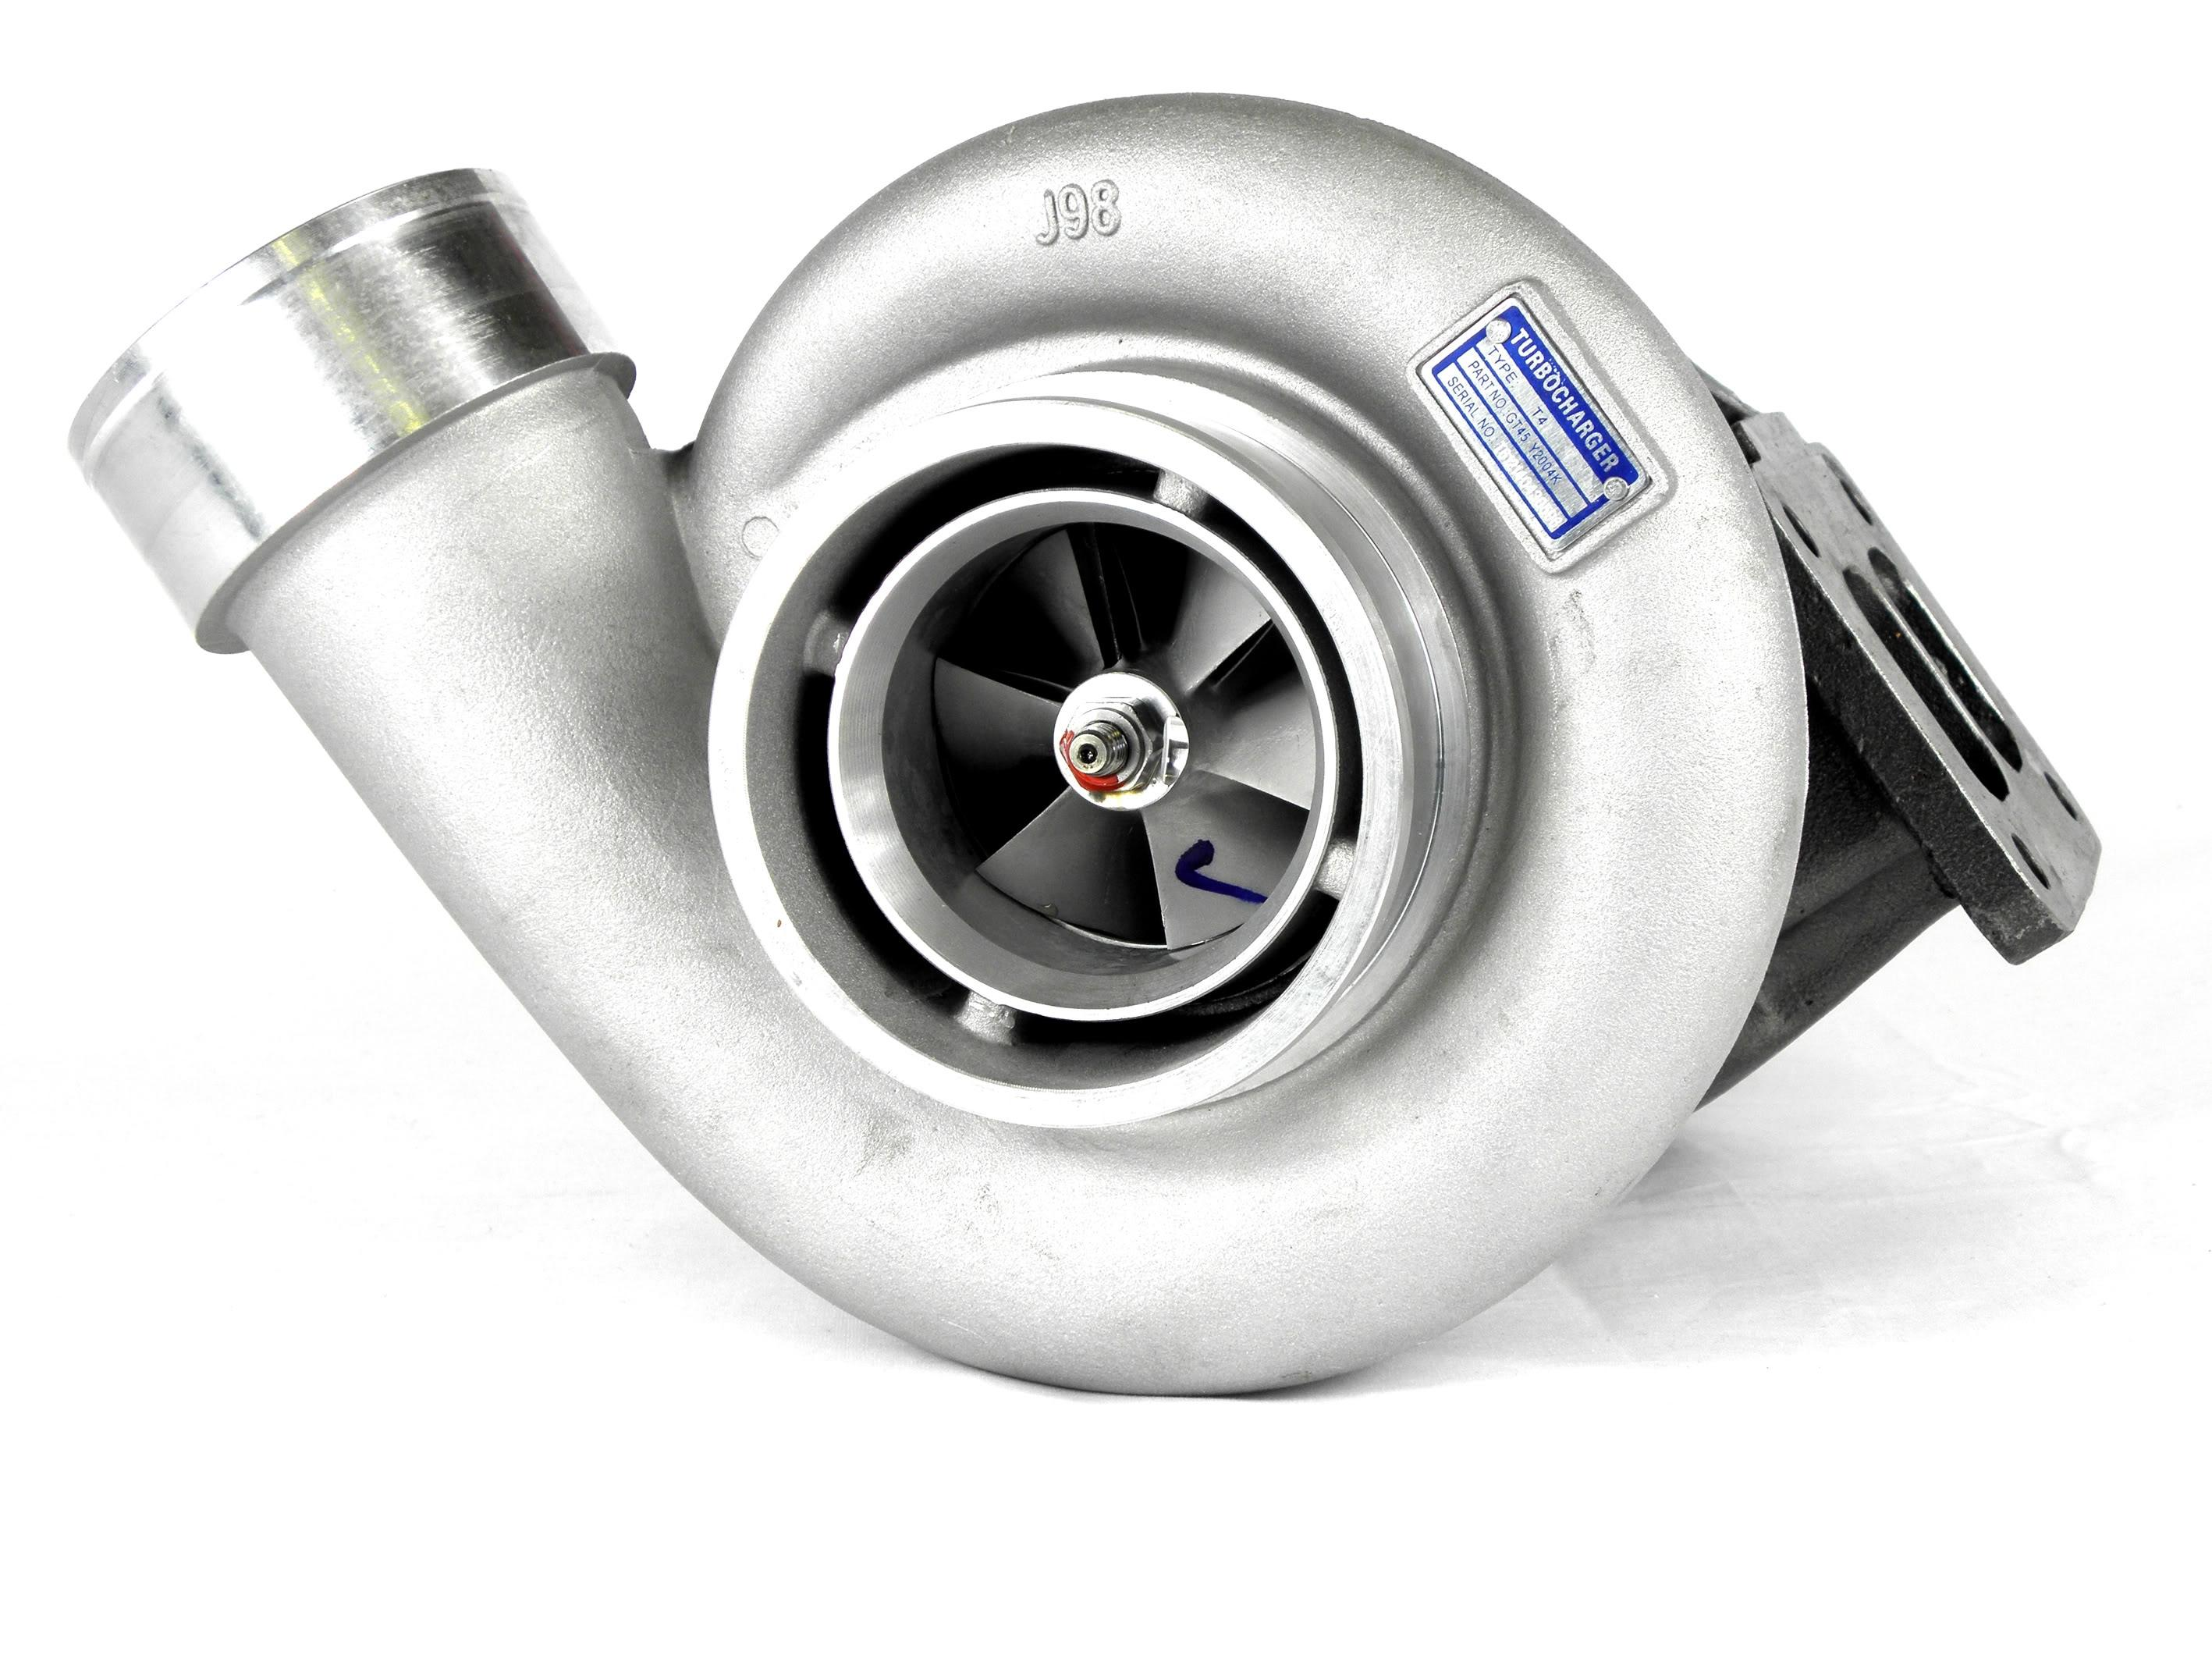 The Rise of The Turbocharger